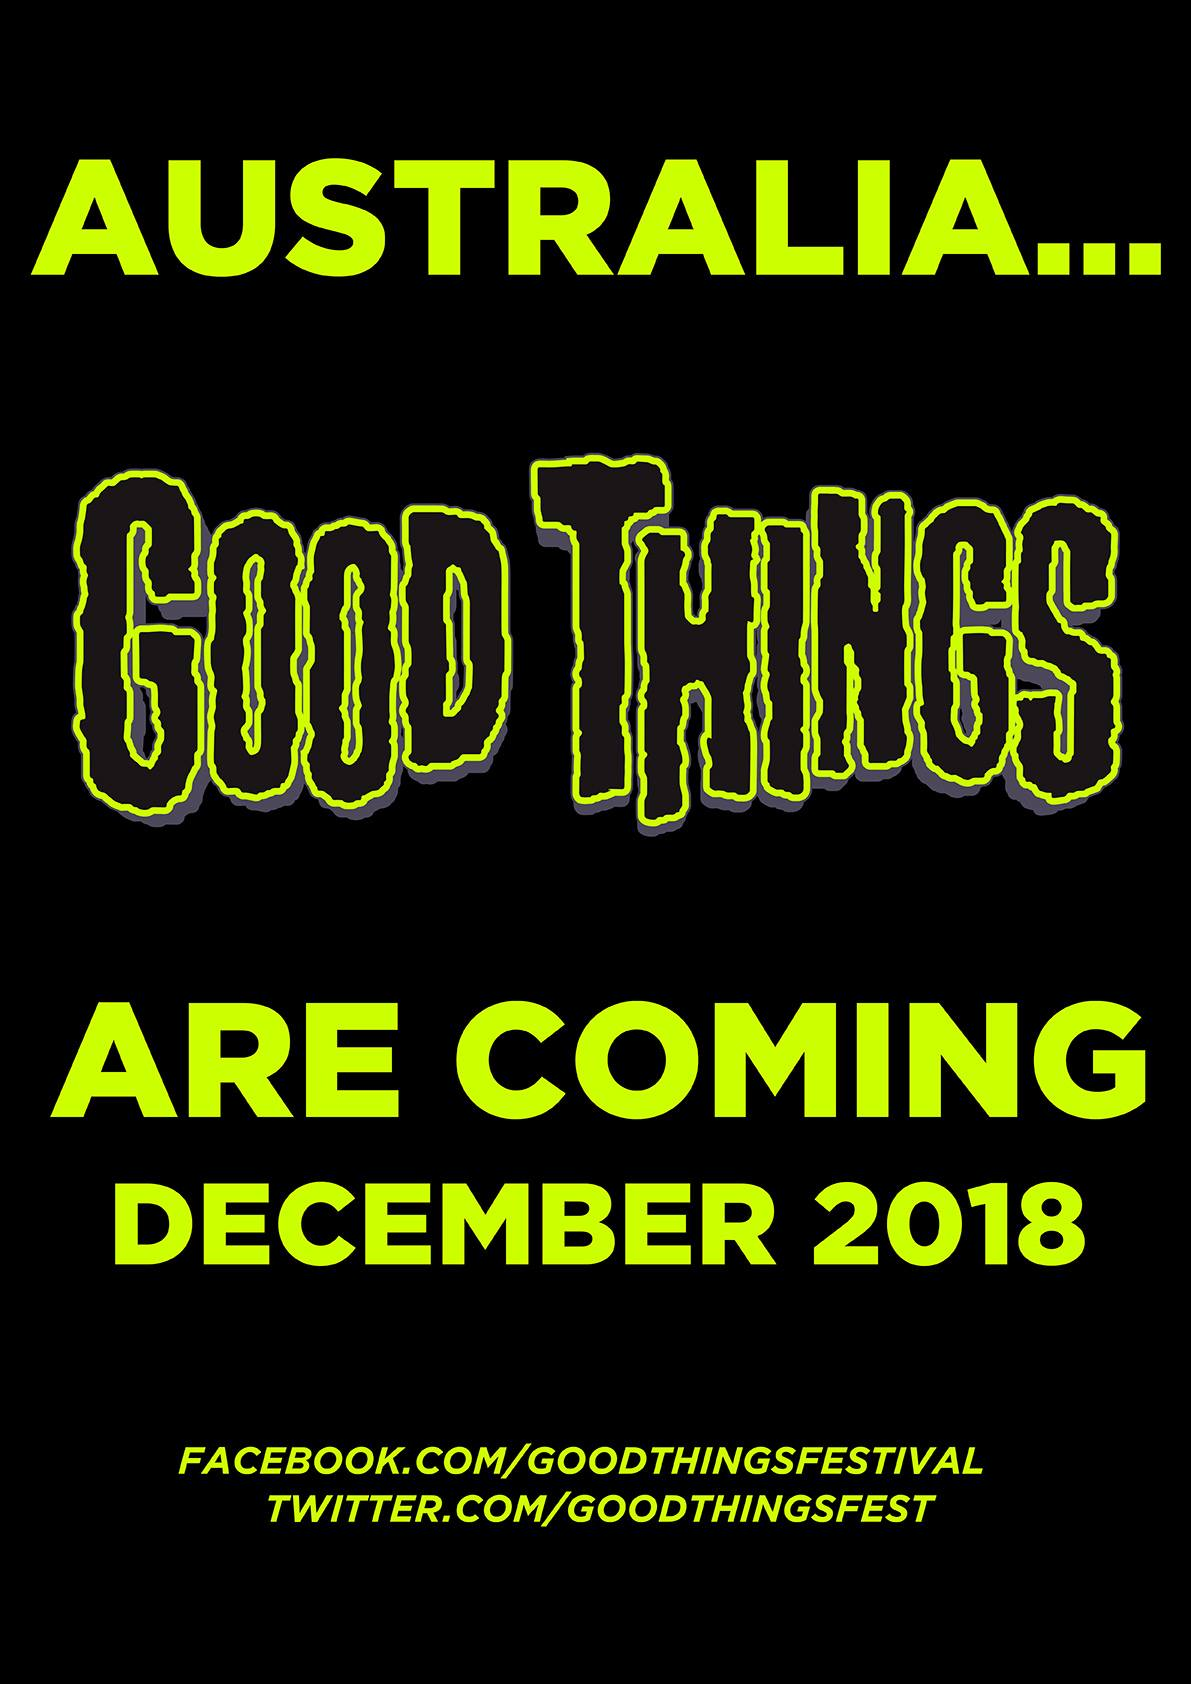 Good Things Festival Dates/Venues & Lineup Reveal Date ...